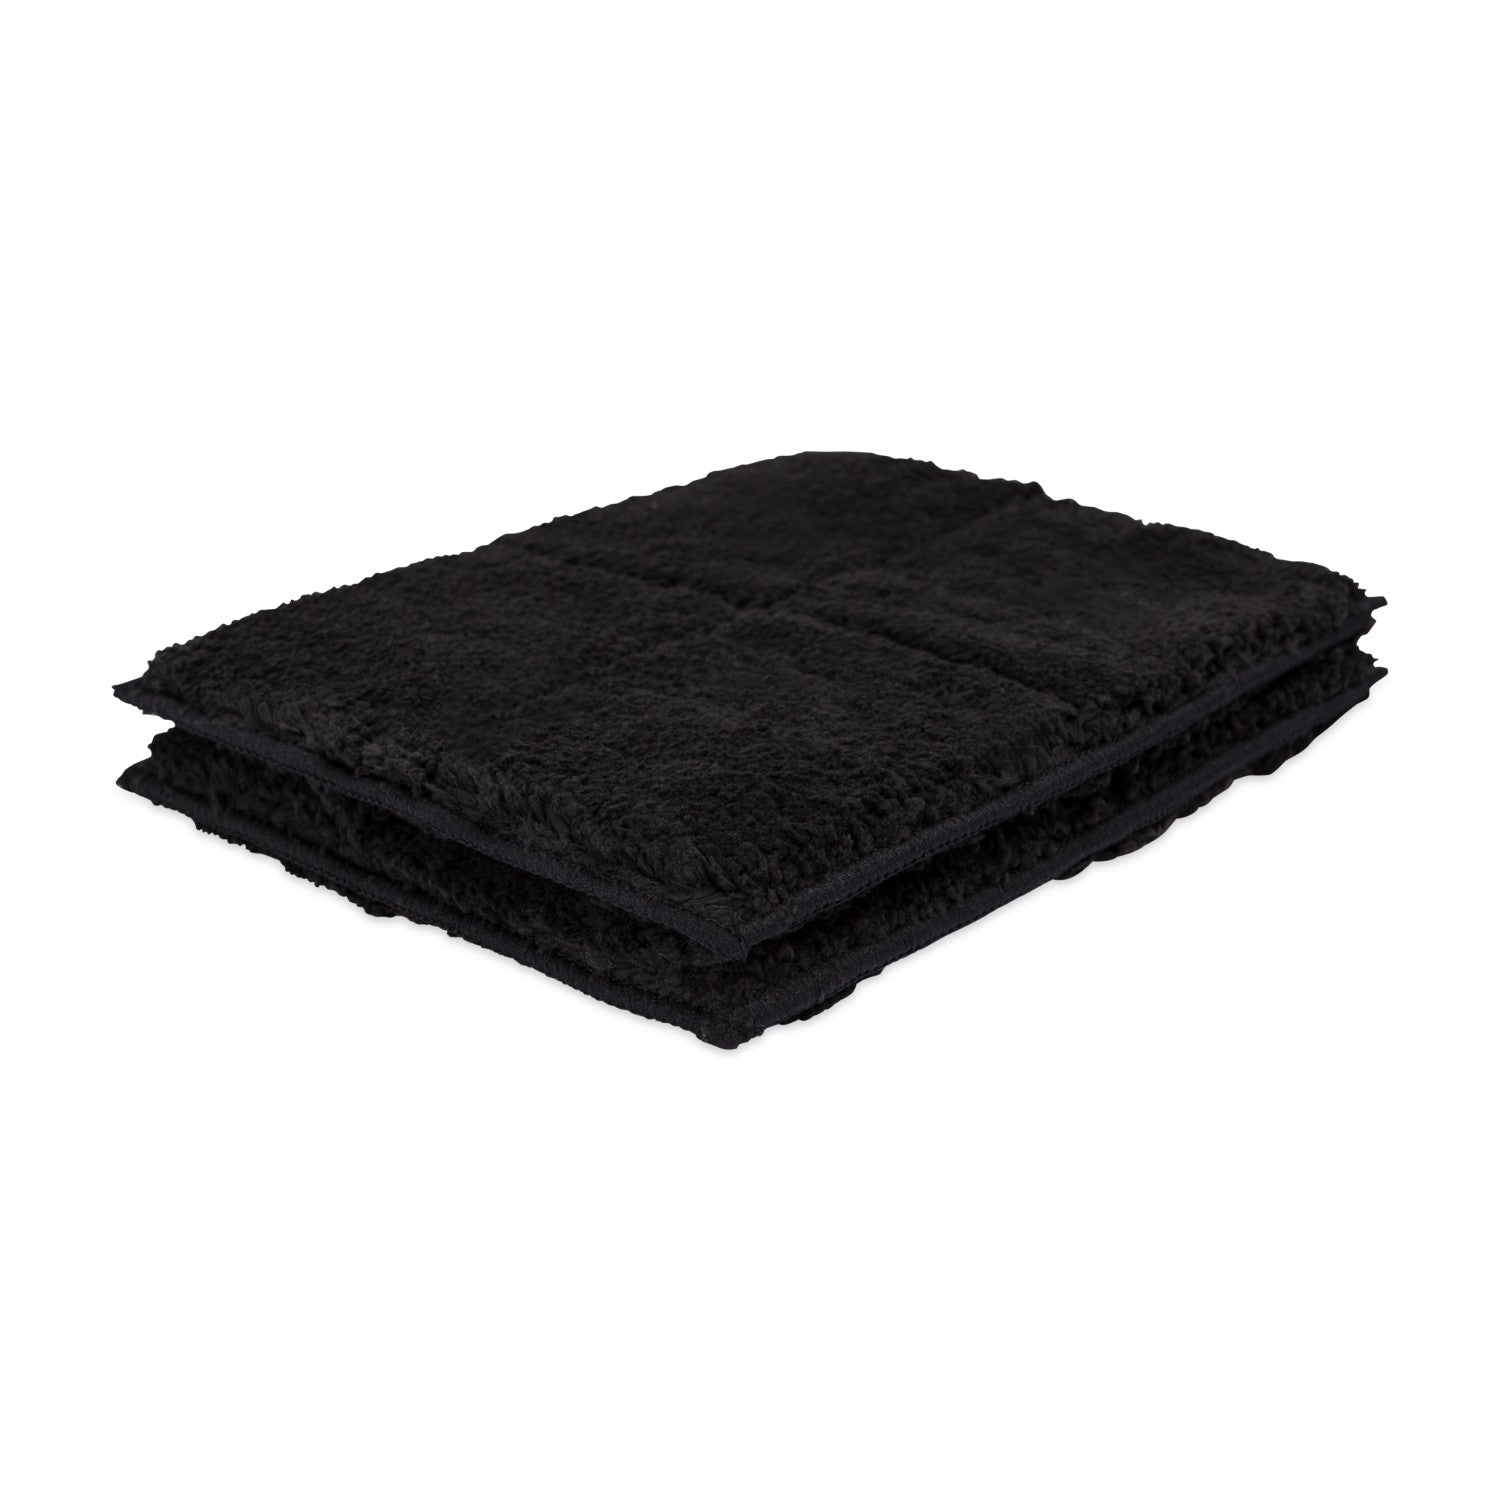 Car Wash Pad 2 Pack